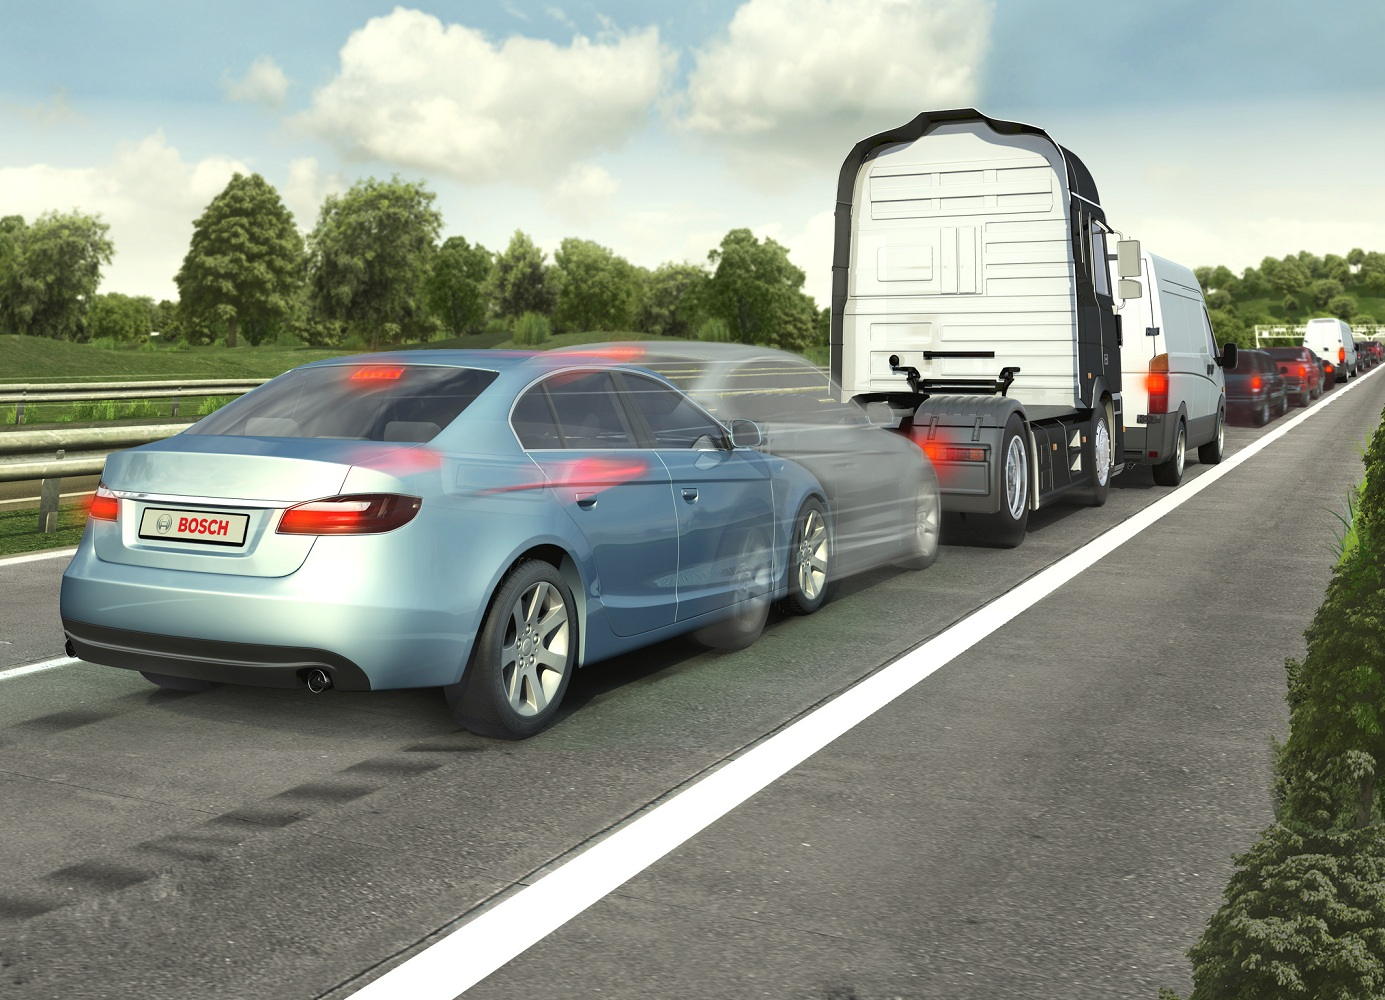 Bosch predictive emergency braking system